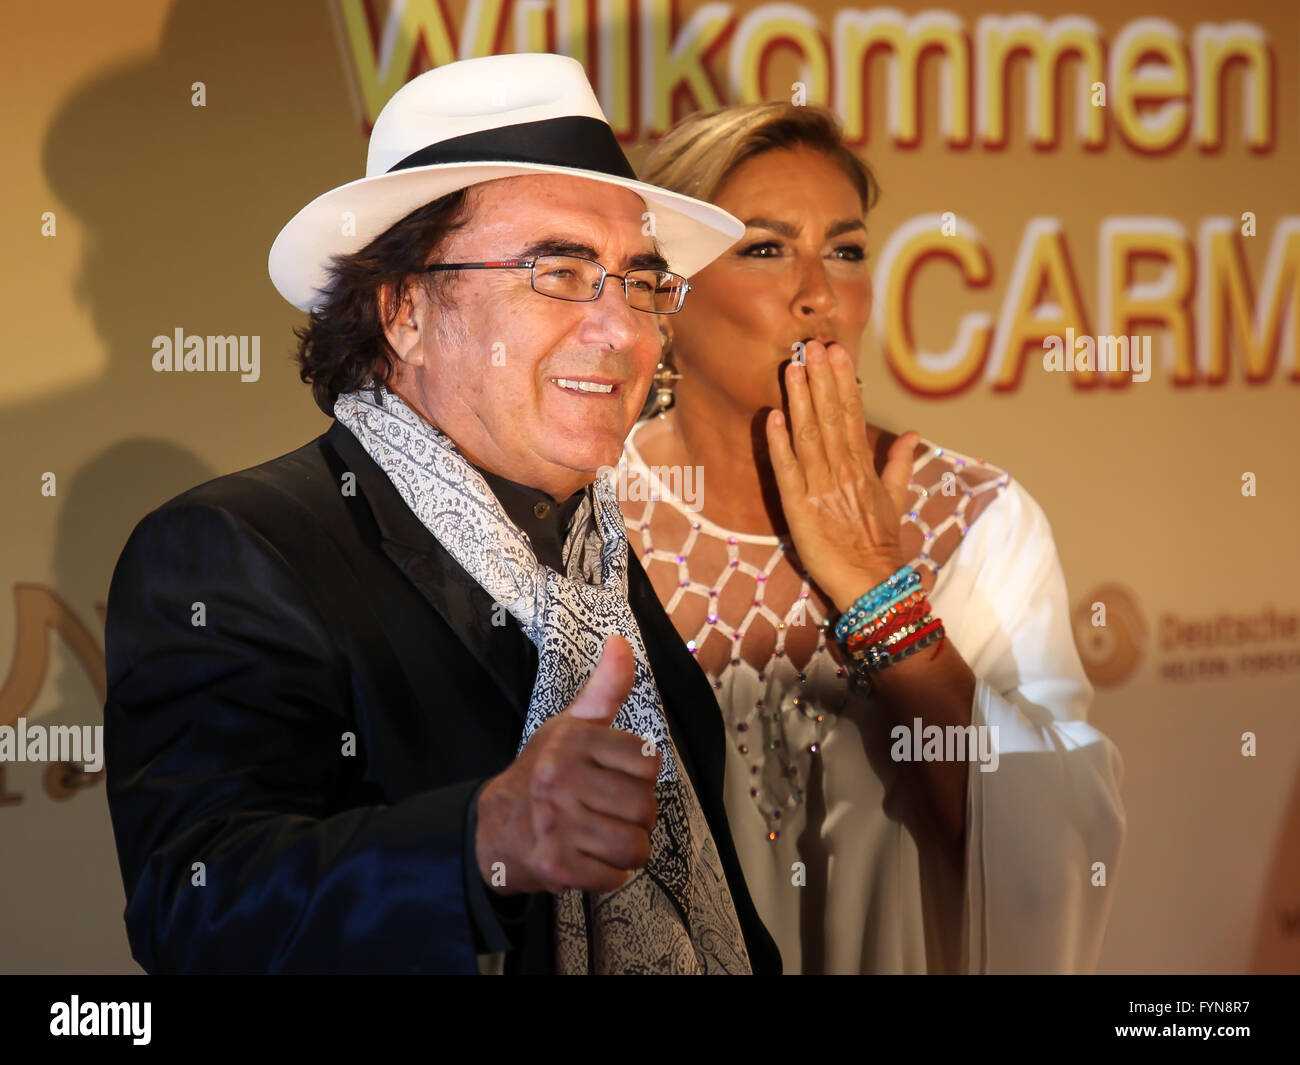 Al Baño Romina Power:Al Bano & Romina Power Stock Photo, Royalty Free Image: 103115467